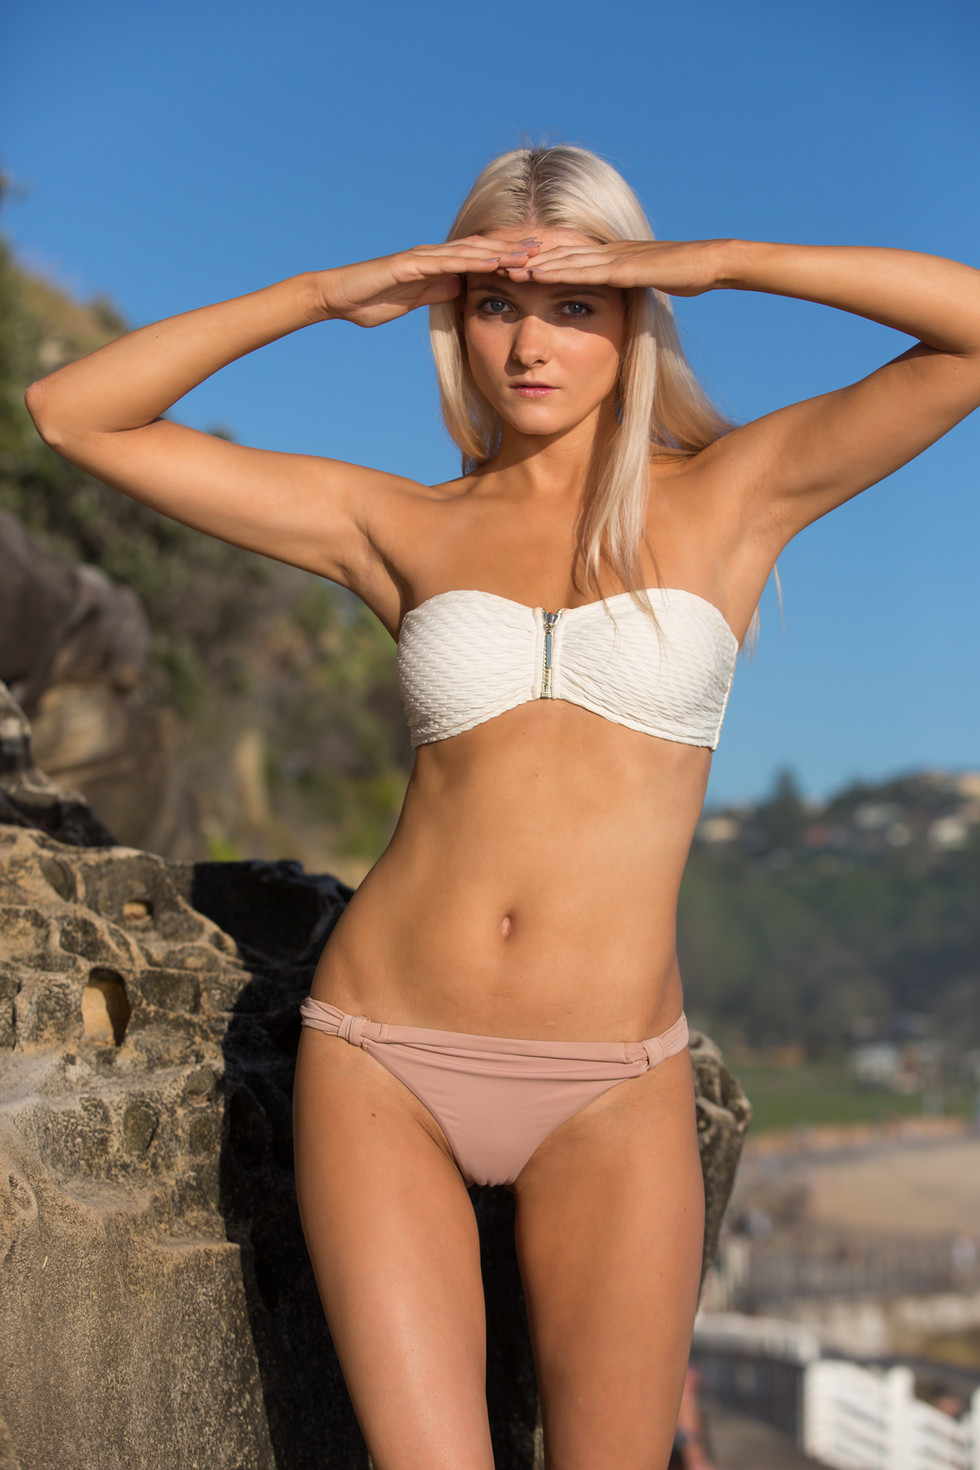 Kriste__by_CoogeePhotography-322111.jpg